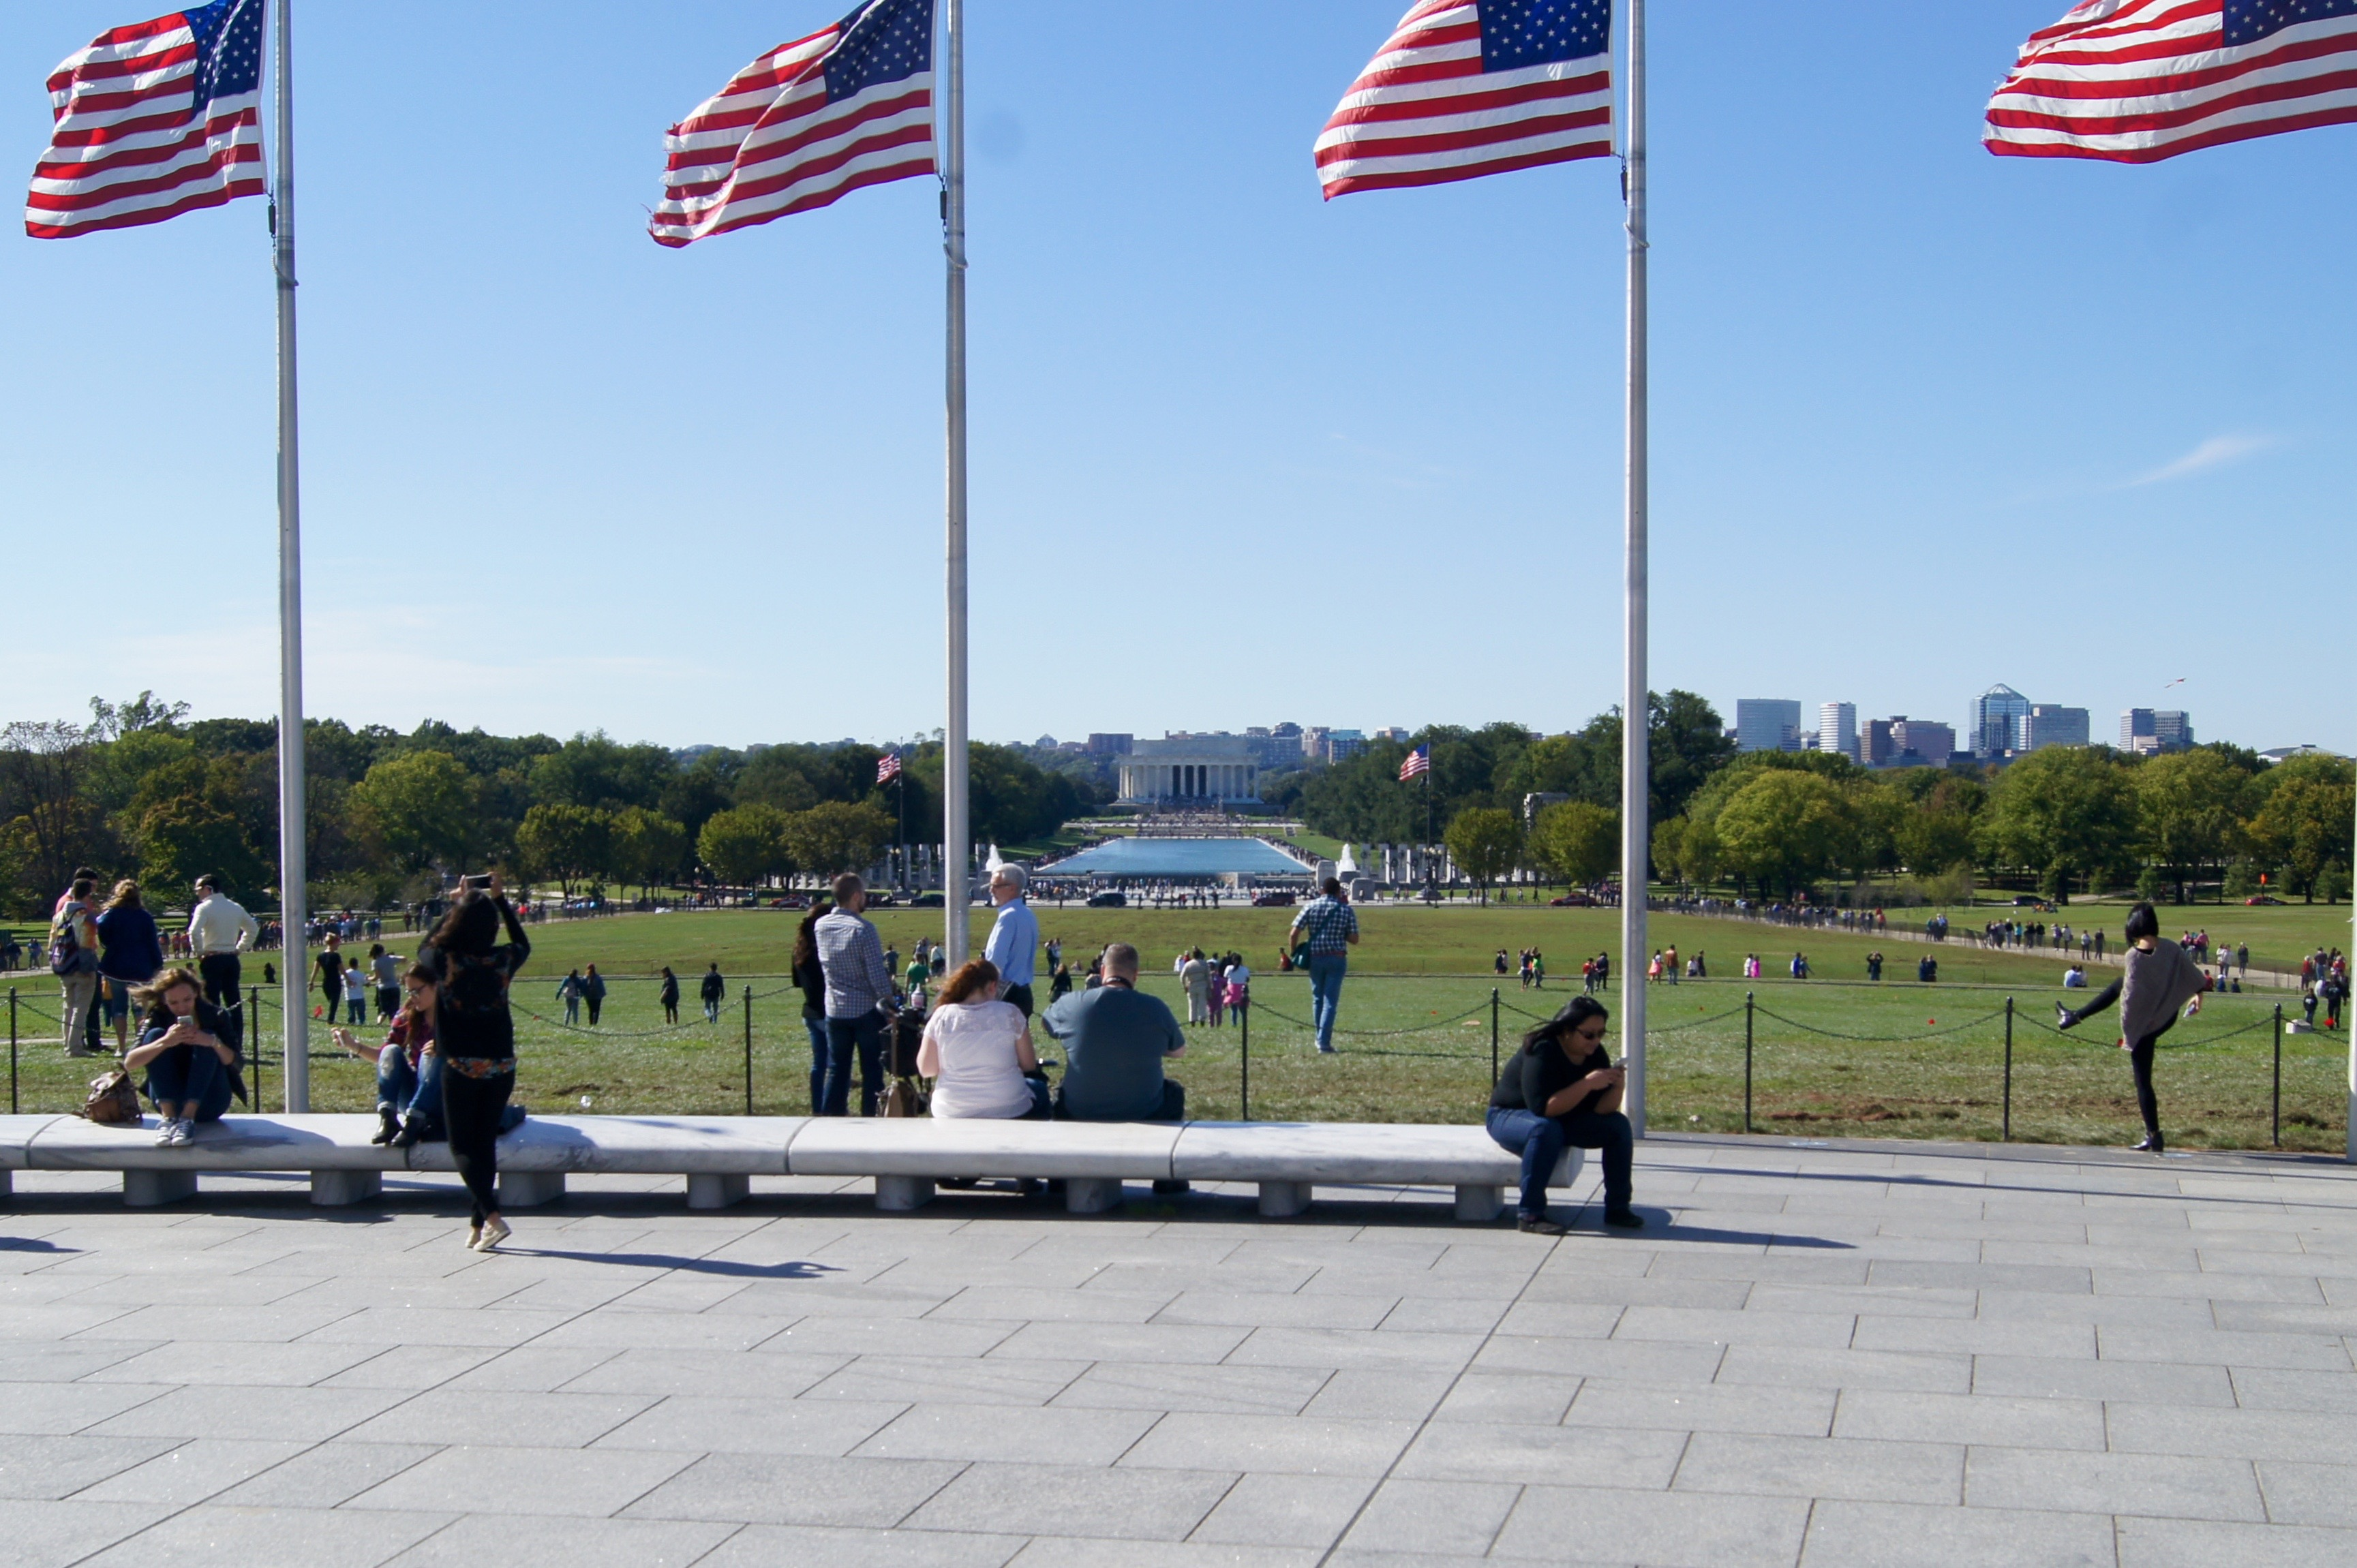 Top Tips for Family Travel to Washington, DC